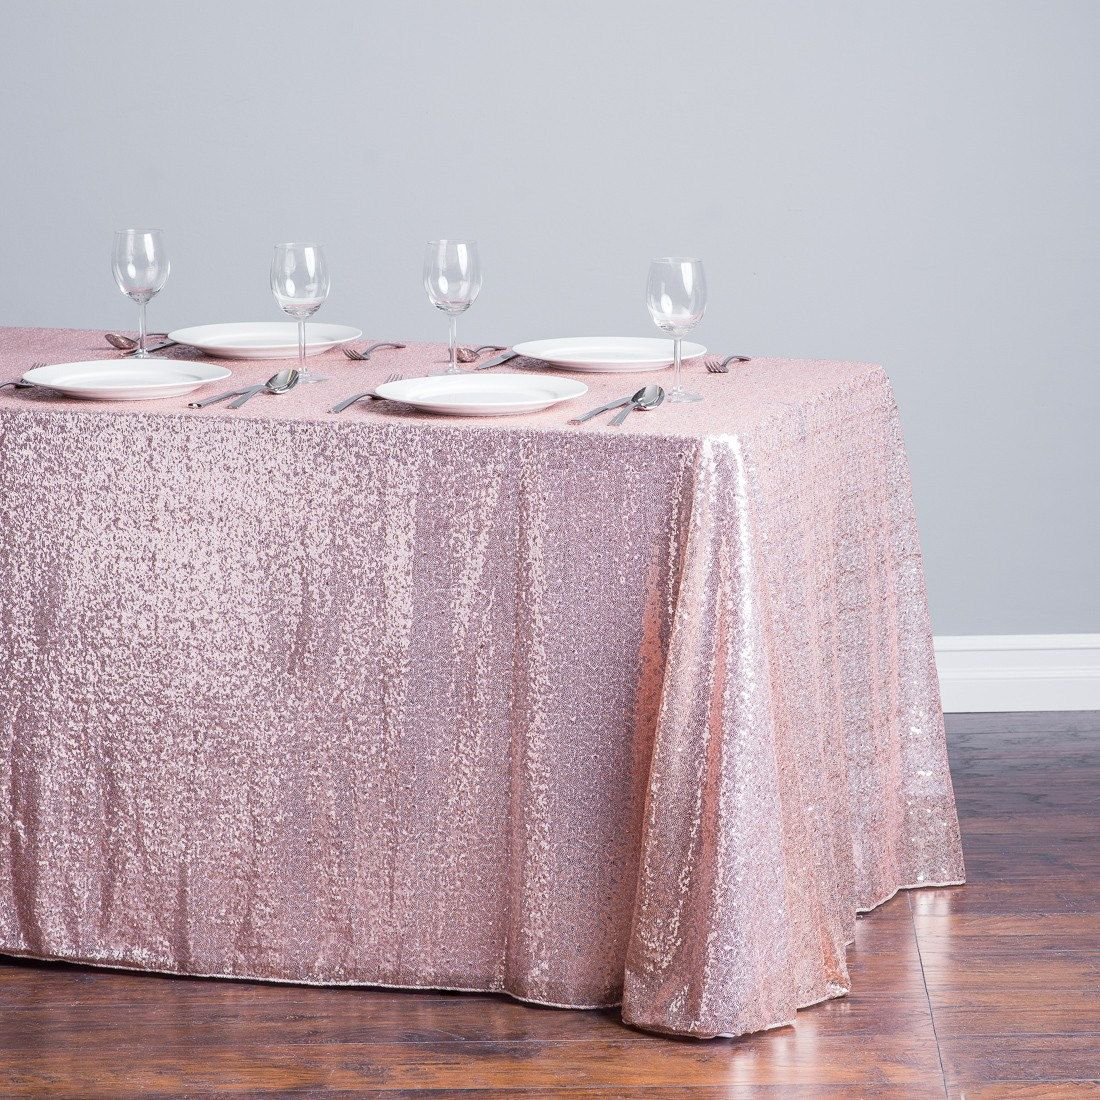 Blush Sequin Tablecloth Baby Shower Table Cloth Gold Sequence Overlay Runner Wedding